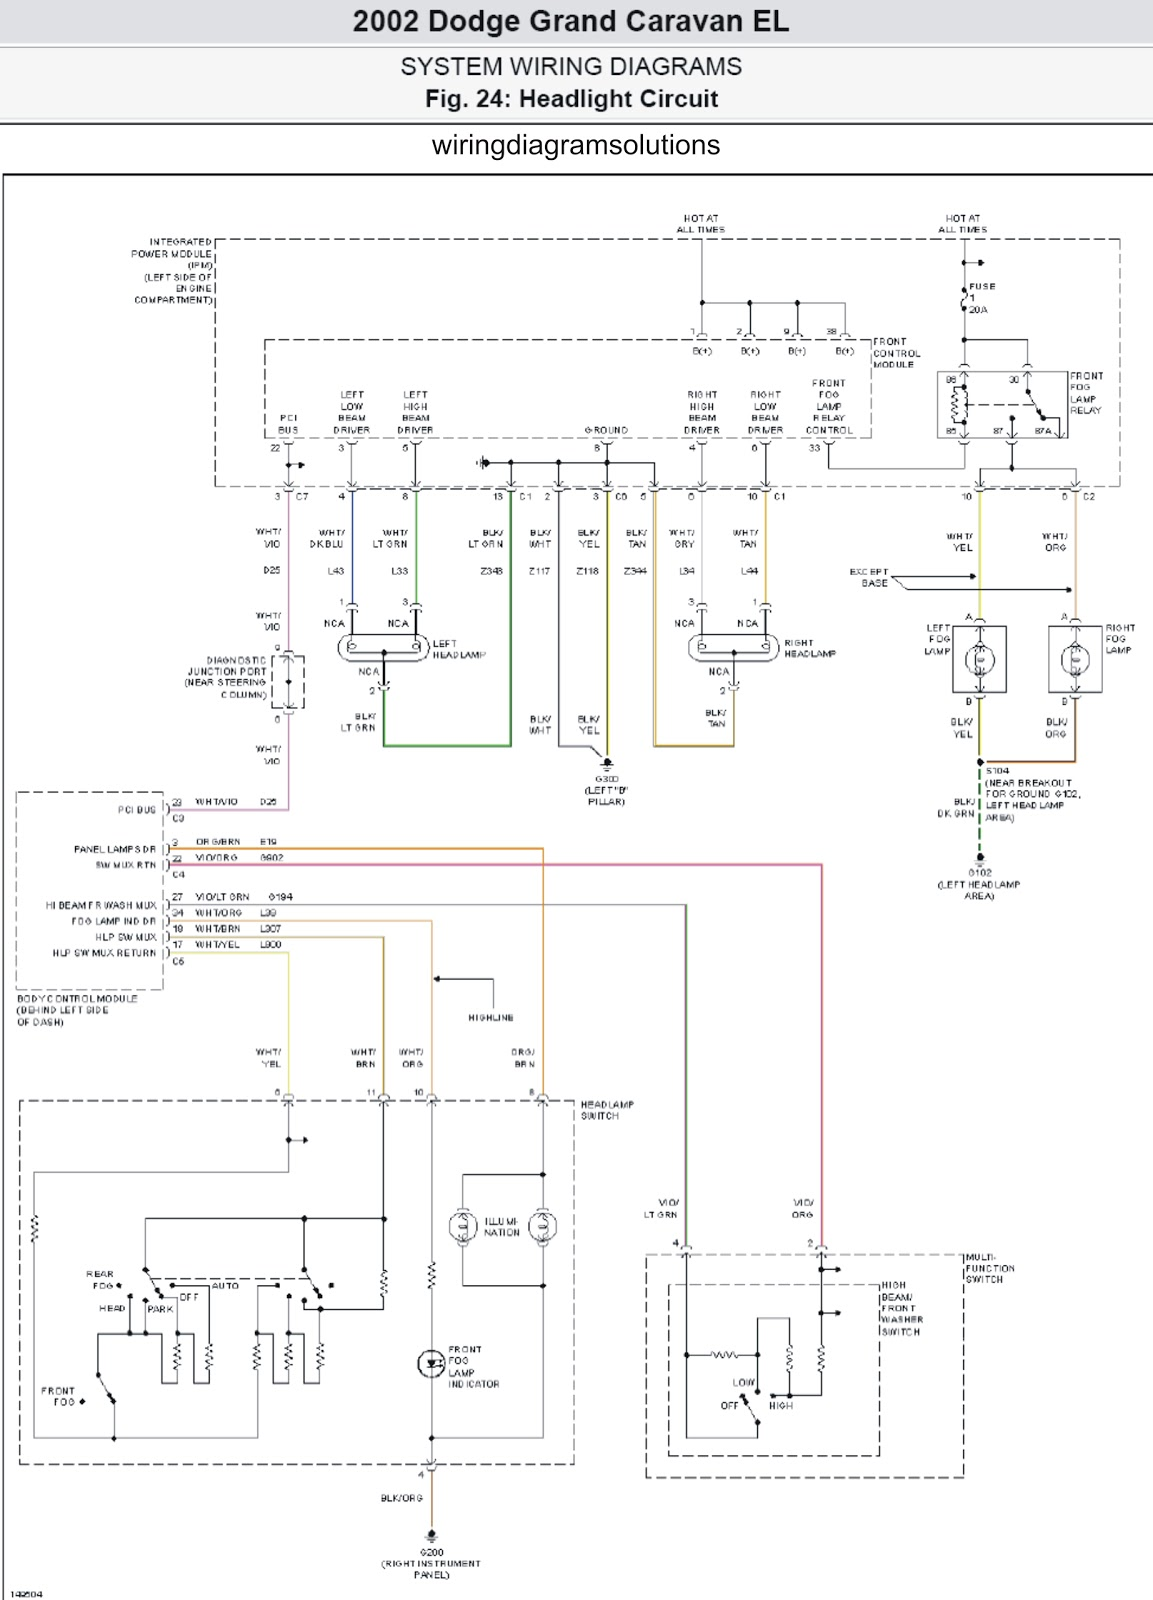 2002+dodge+caravan+Headlight+Circuit wiring diagram for 2015 dodge caravan readingrat net 2012 dodge grand caravan radio wiring diagram at edmiracle.co